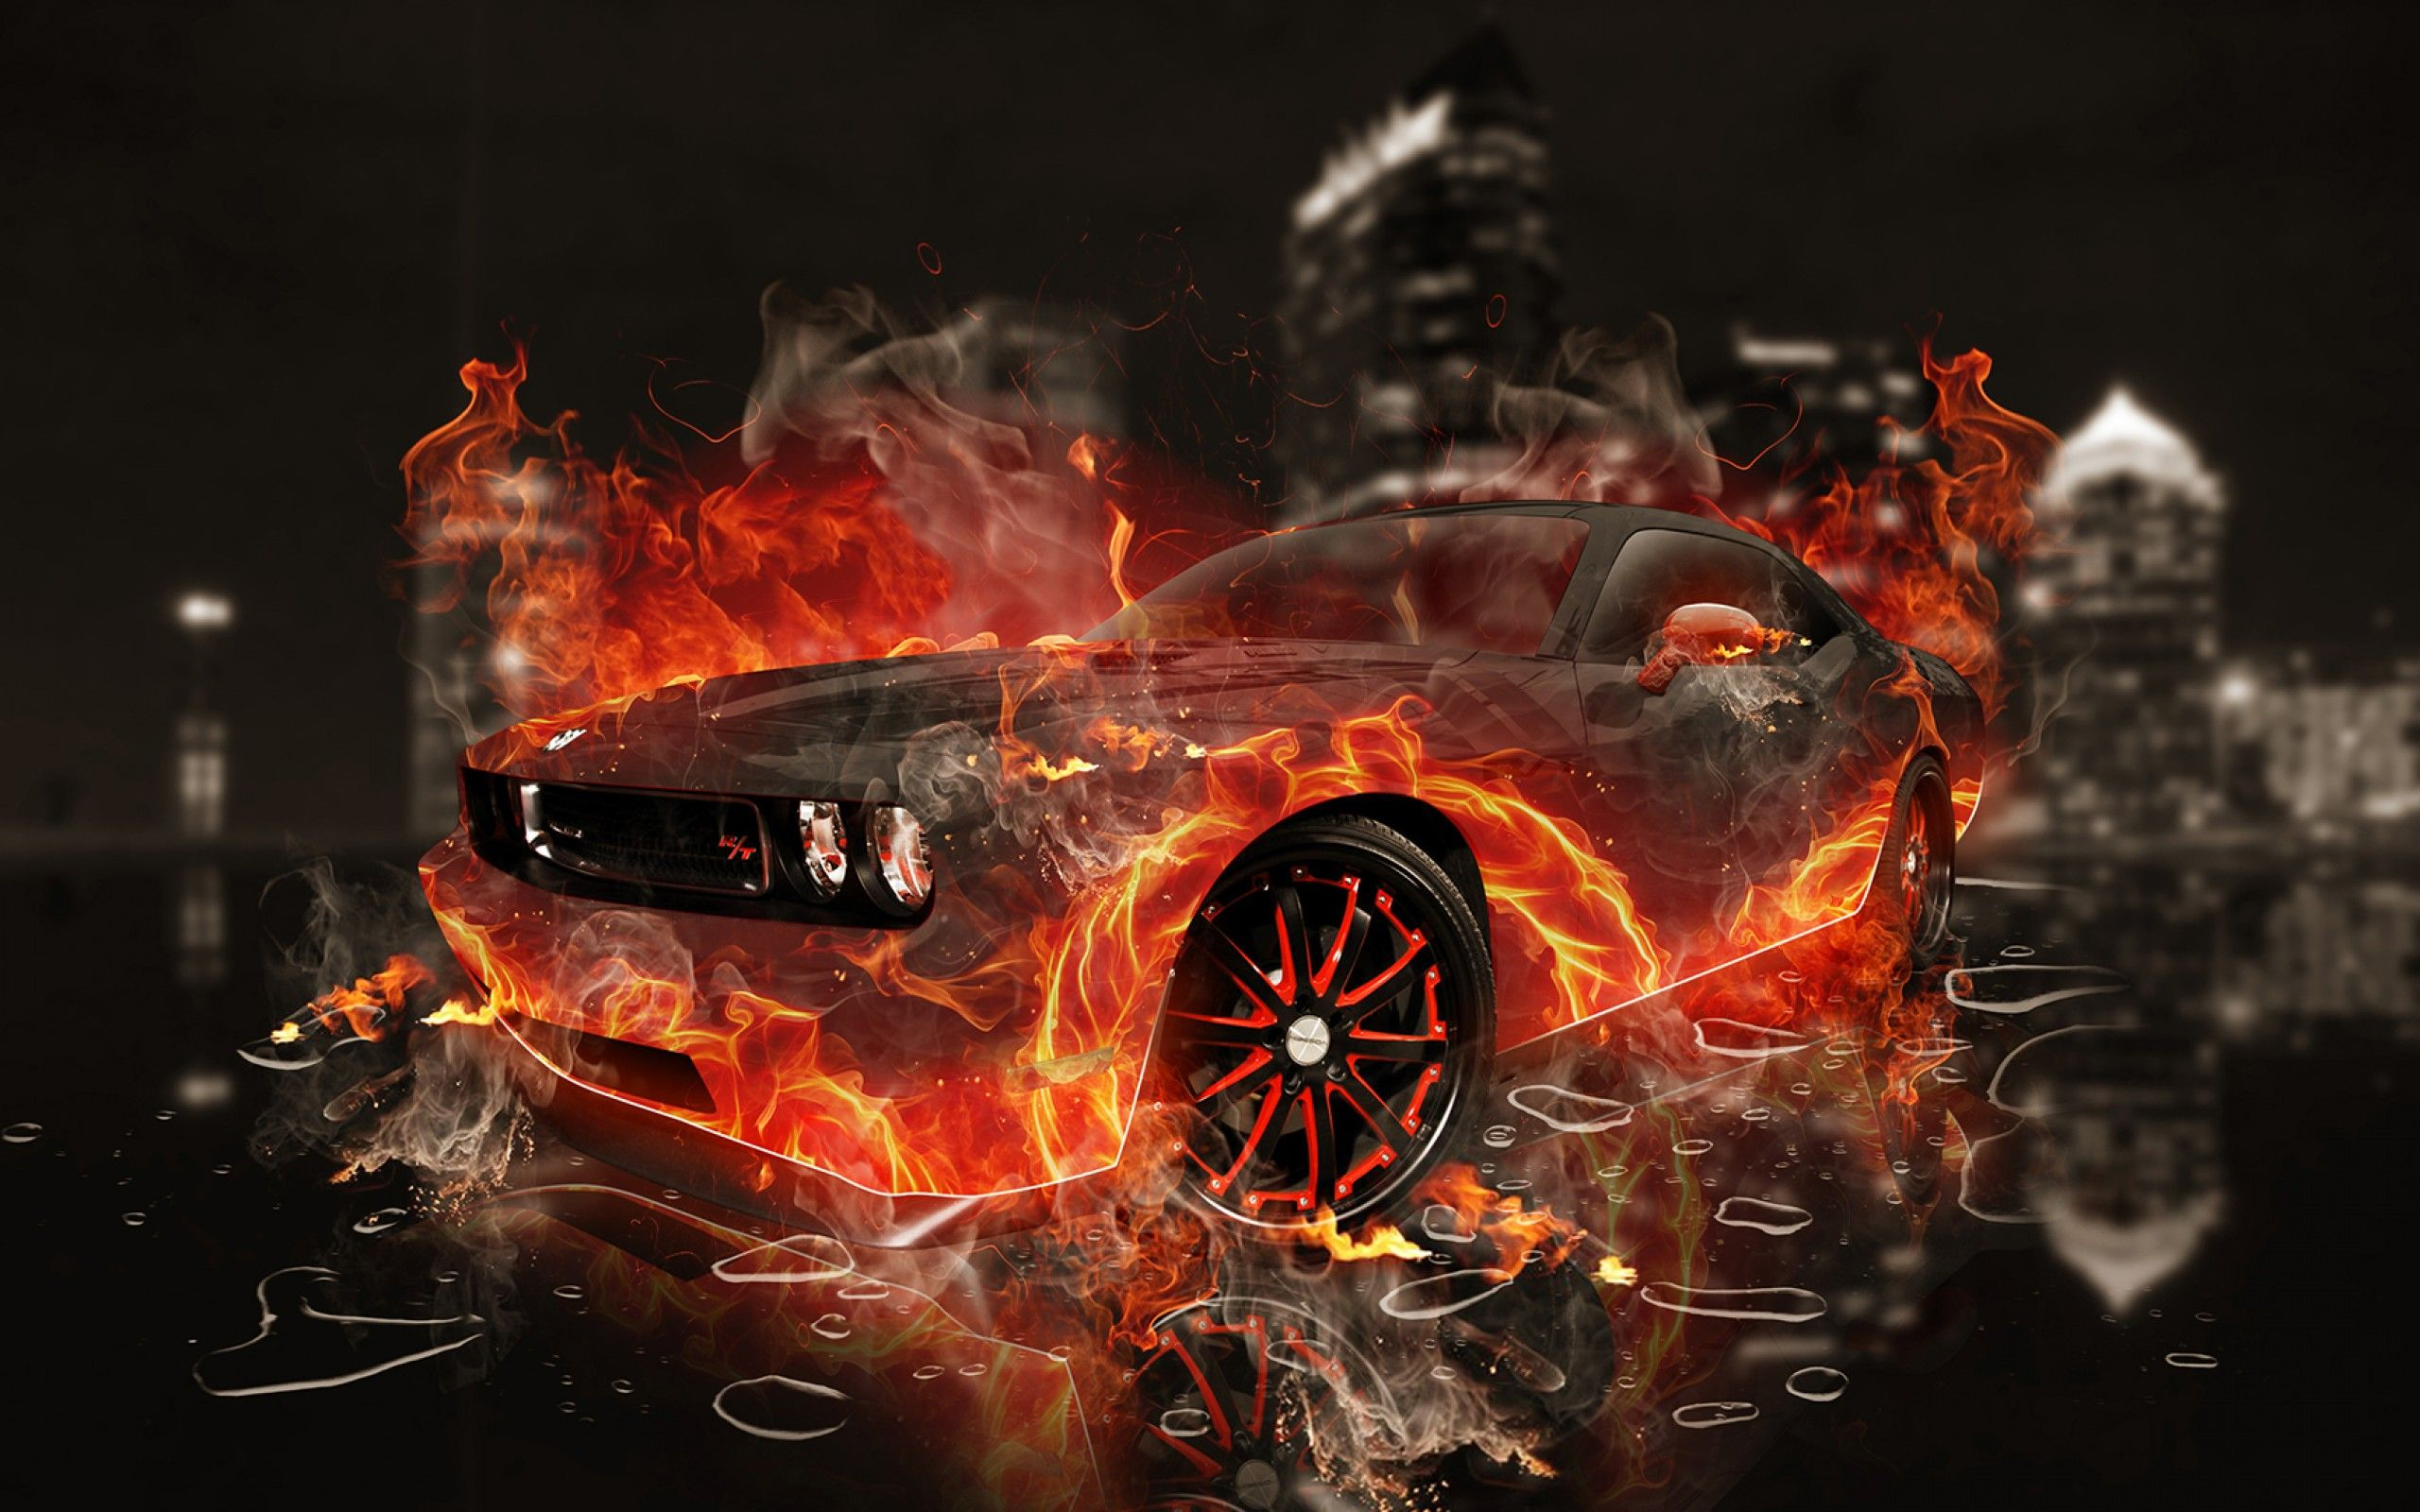 Fire Cars Wallpapers - Top Free Fire Cars Backgrounds ...